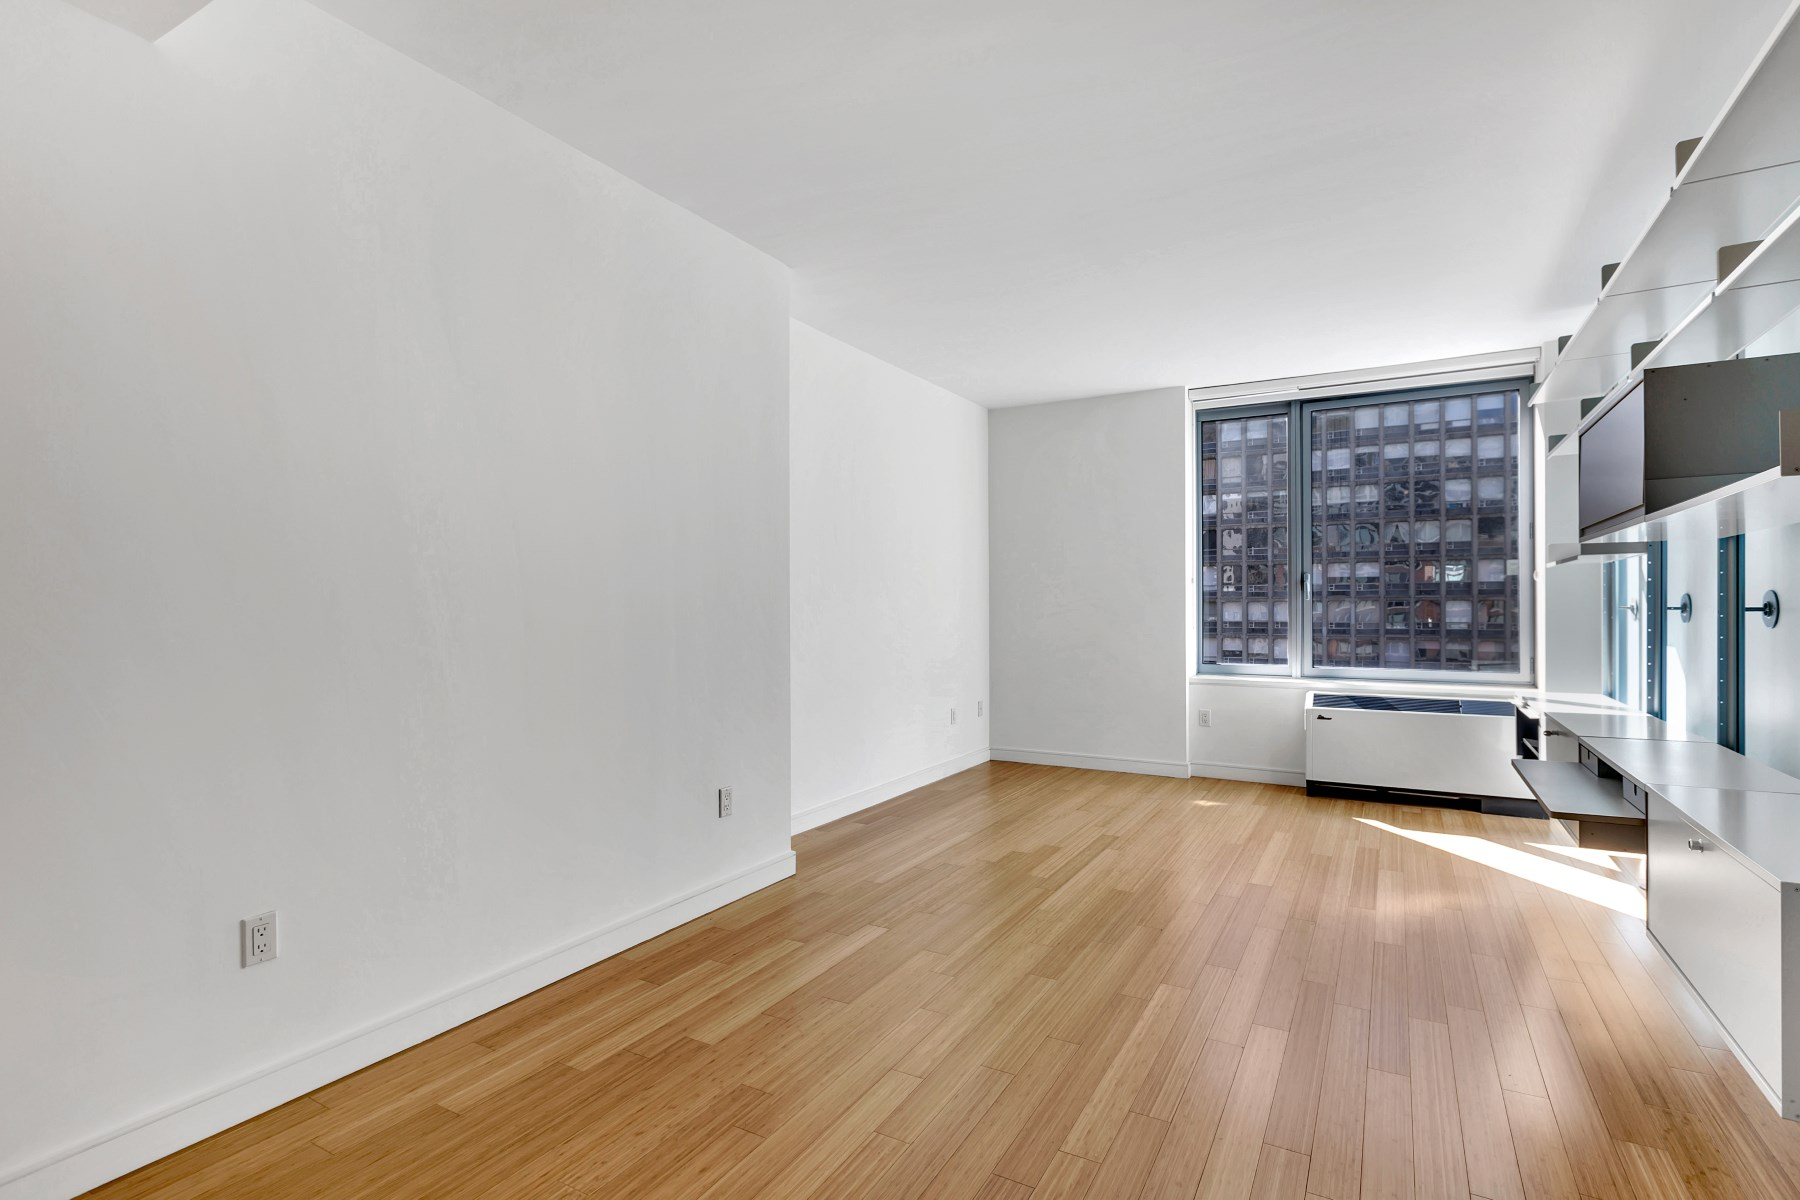 Property Of Now Showing: 303 E. 33rd Street, No. 3L